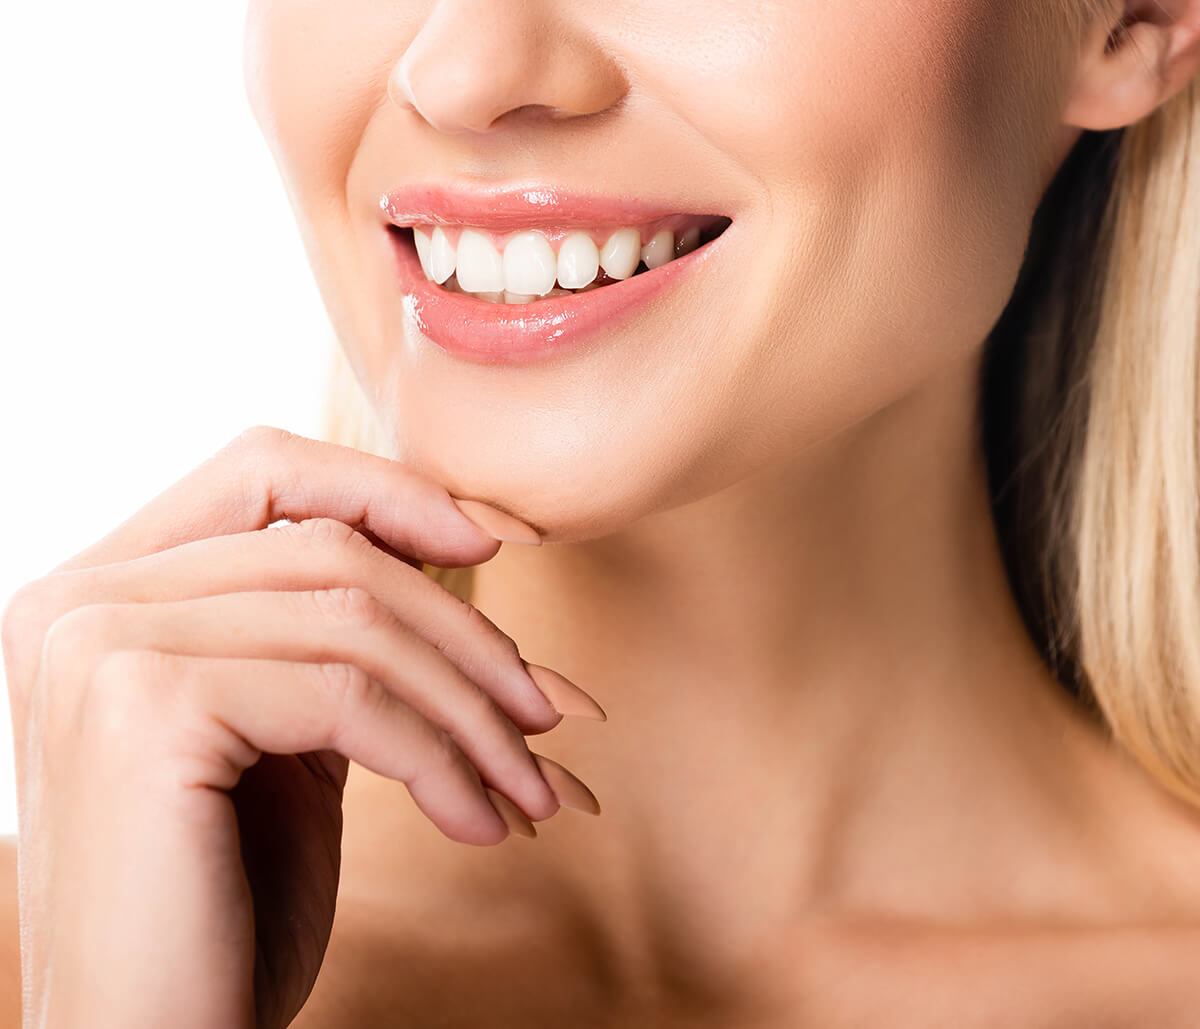 Veneers for Discolored Teeth at Go Natural Dentistry in Fort Lauderdale Area